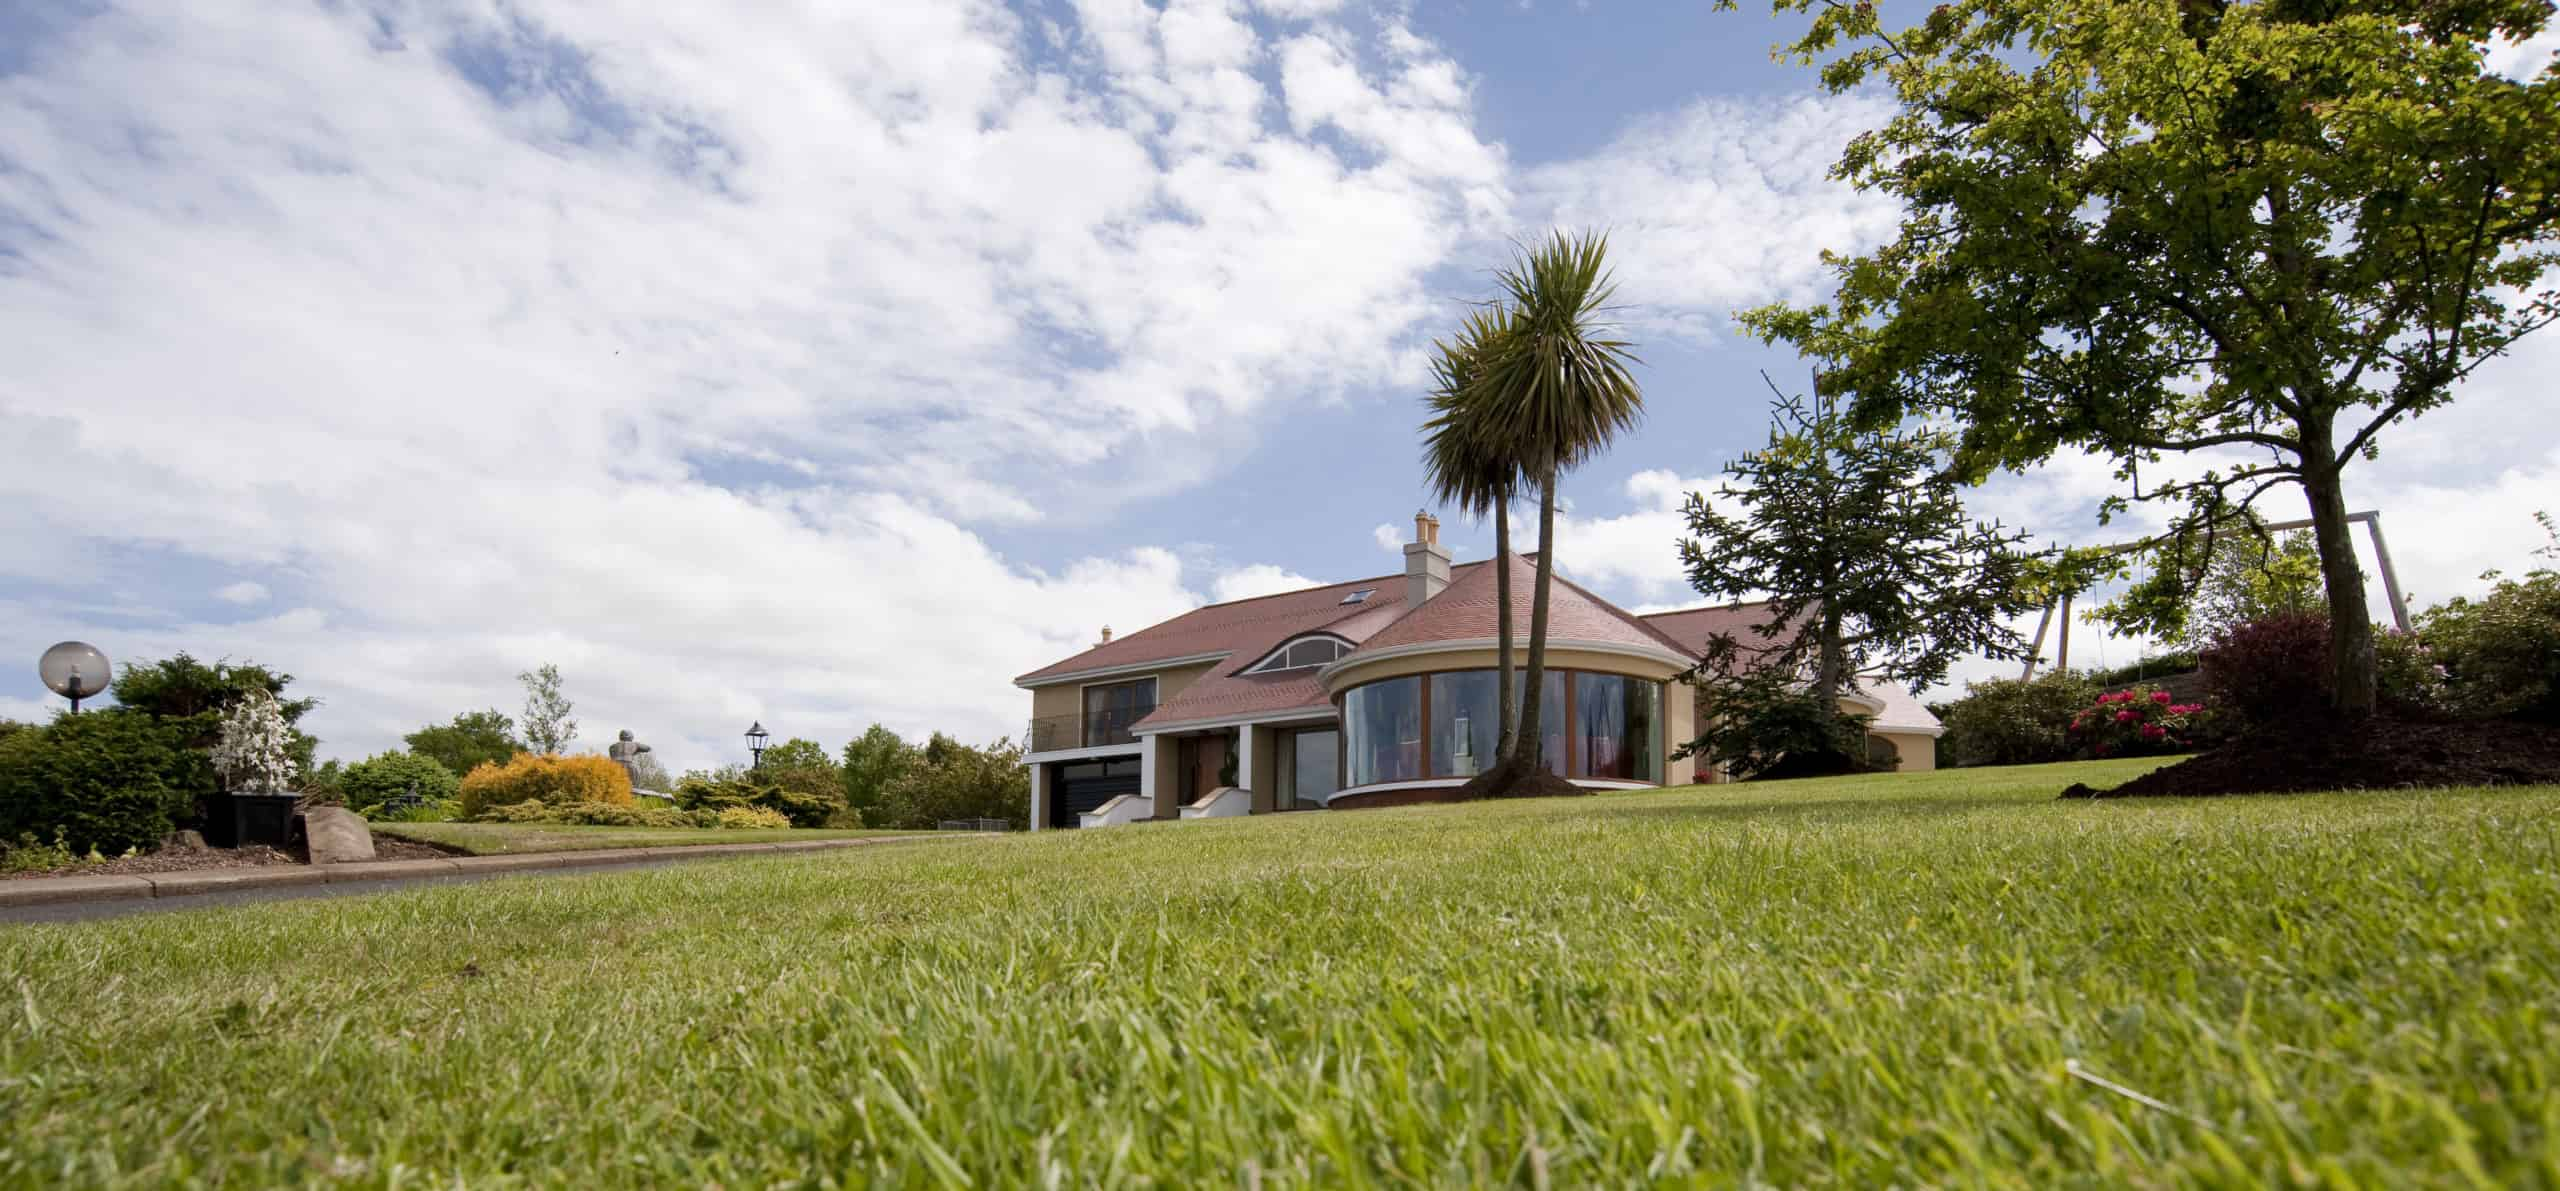 Mullen Extension - Laid on Grass View